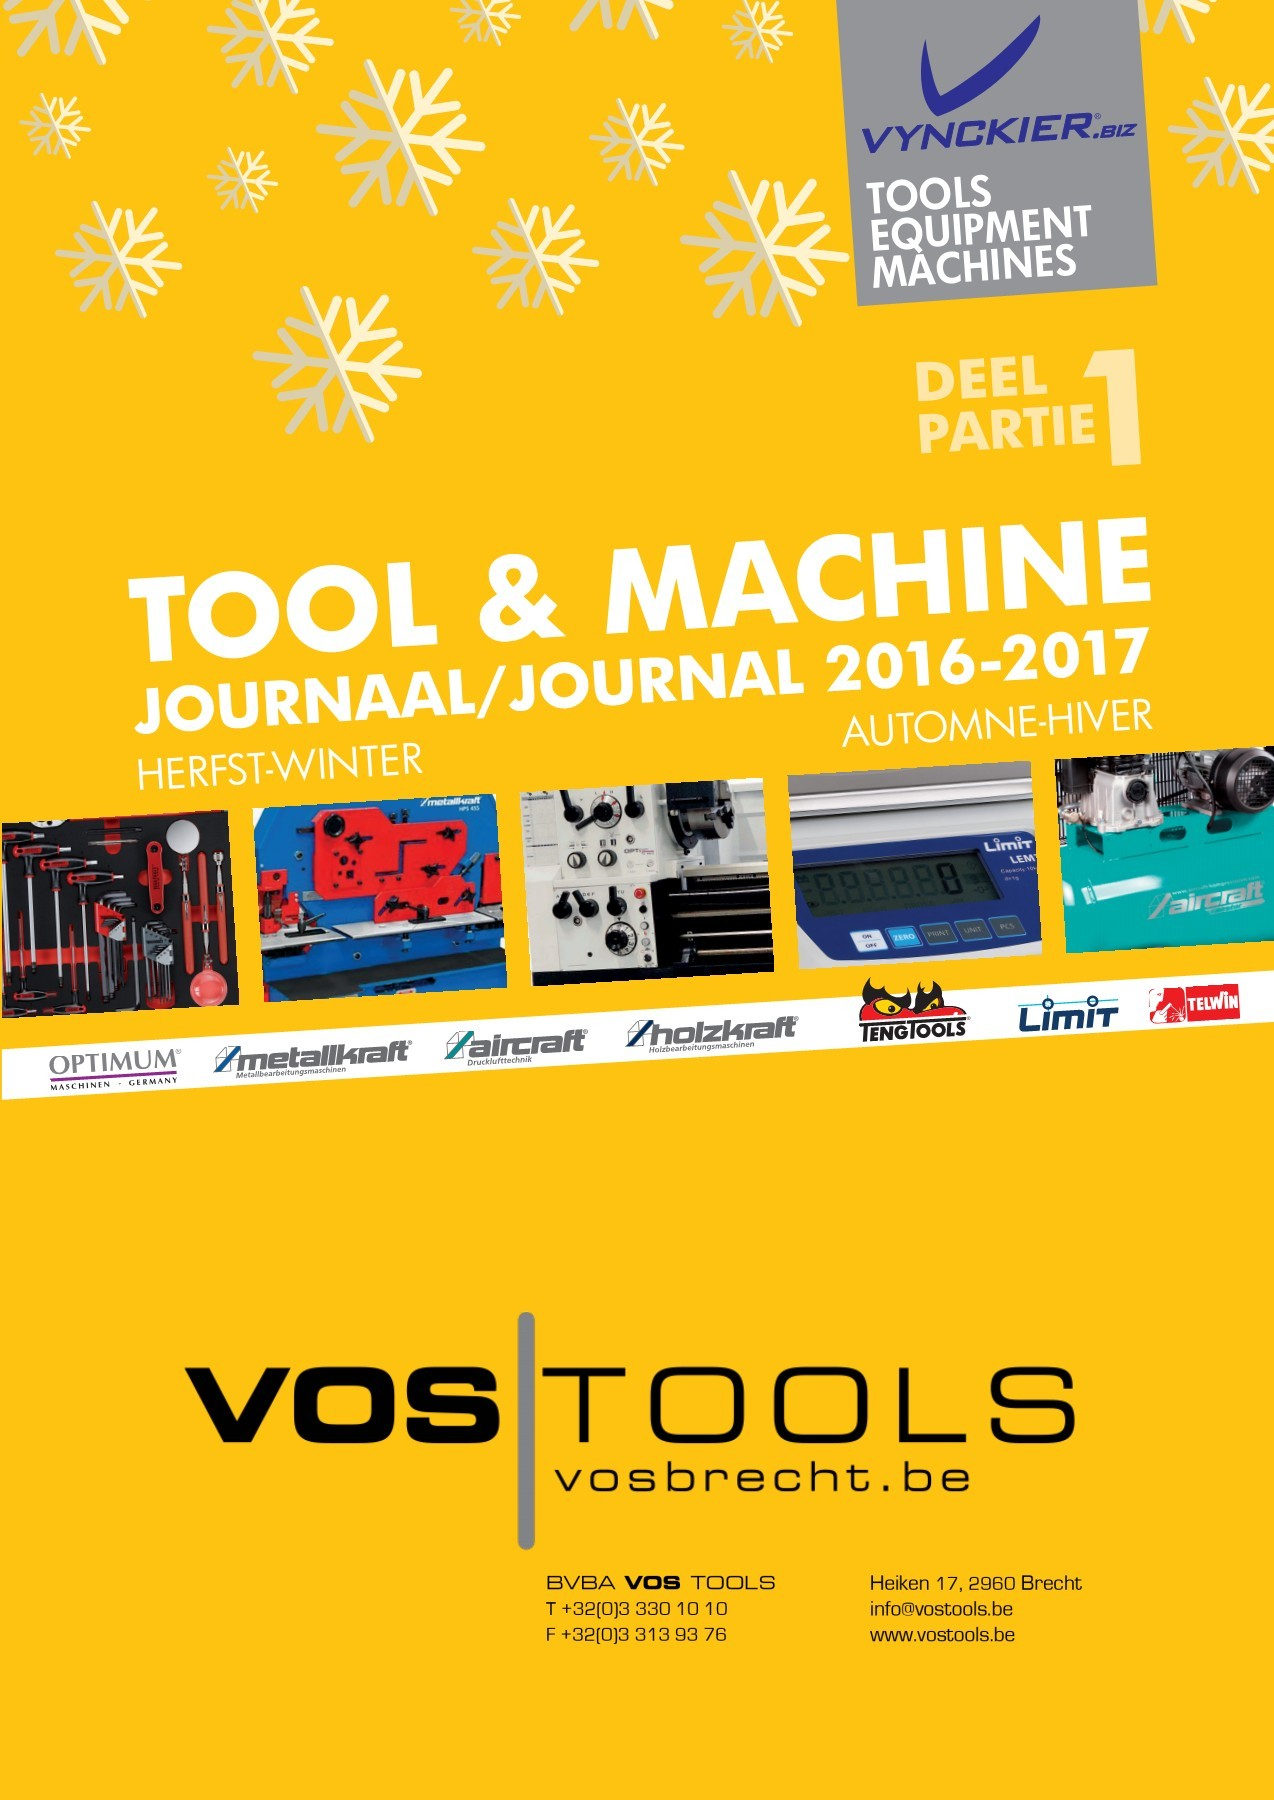 Startkabels Gamma Vos Tools Tool Machine 1 Pages 1 50 Text Version Fliphtml5